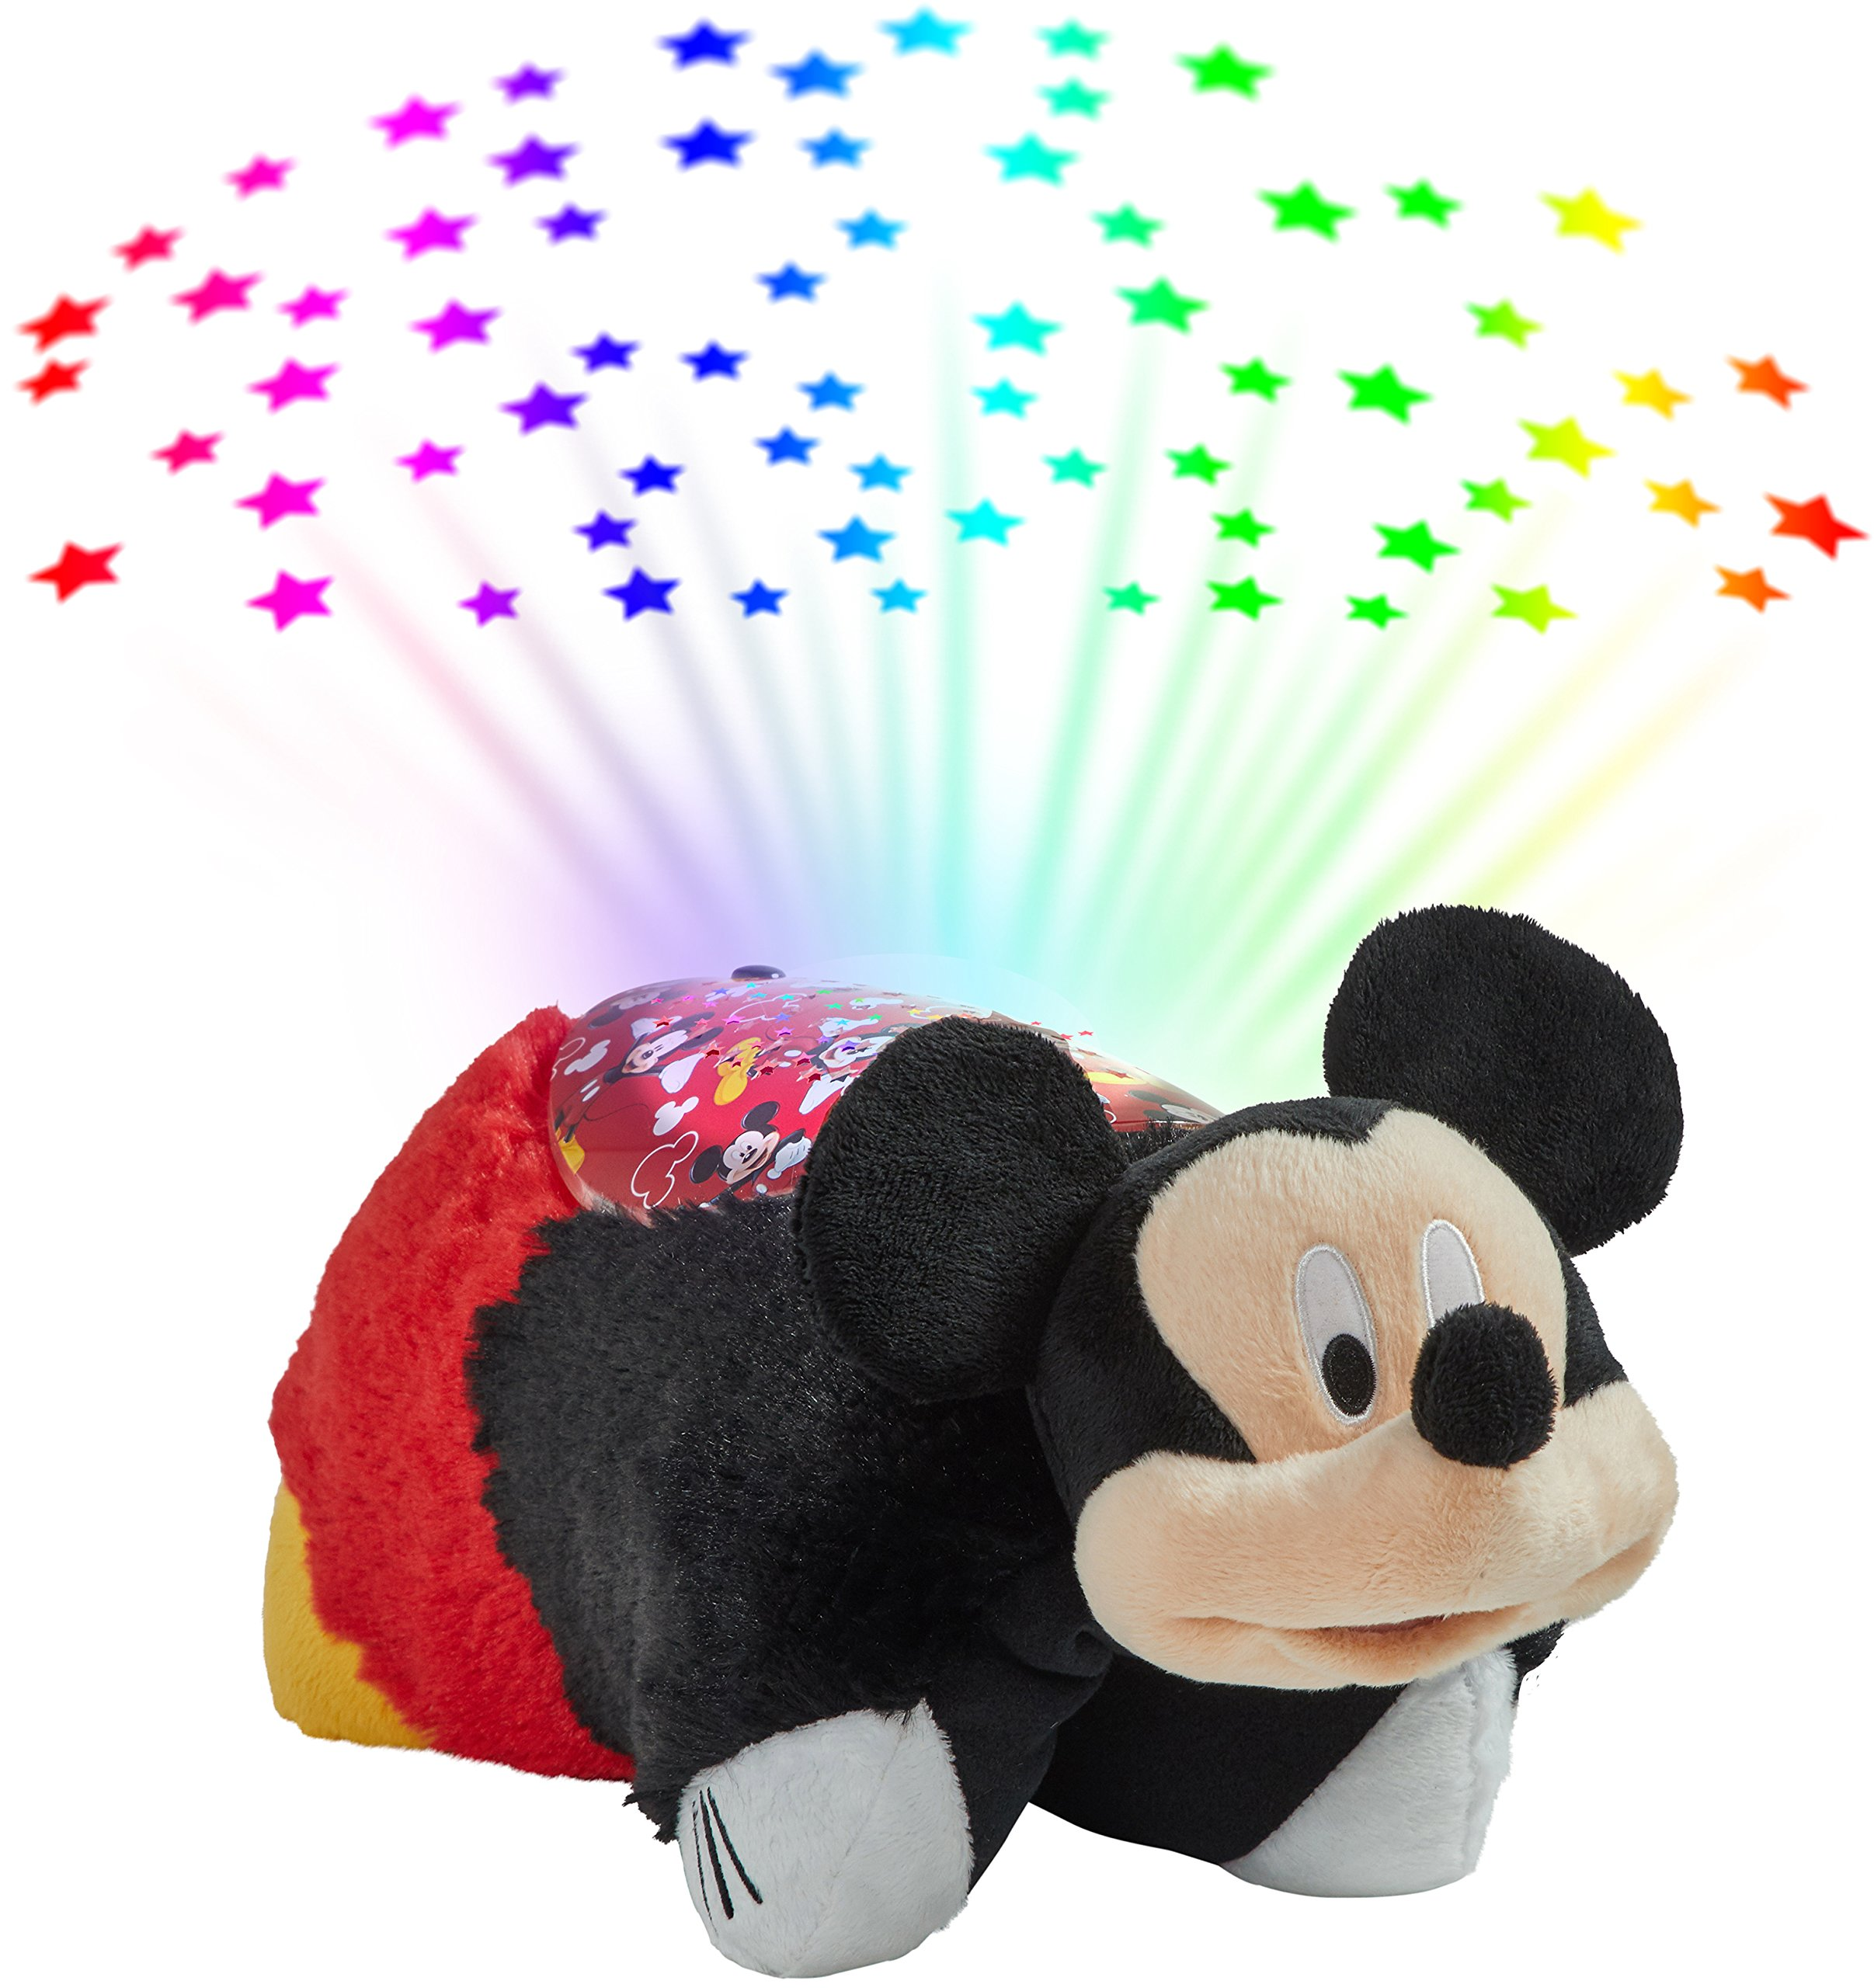 Pillow Pets Disney Mickey Mouse Sleeptime Lite Stuffed Animal Night Light by Pillow Pets